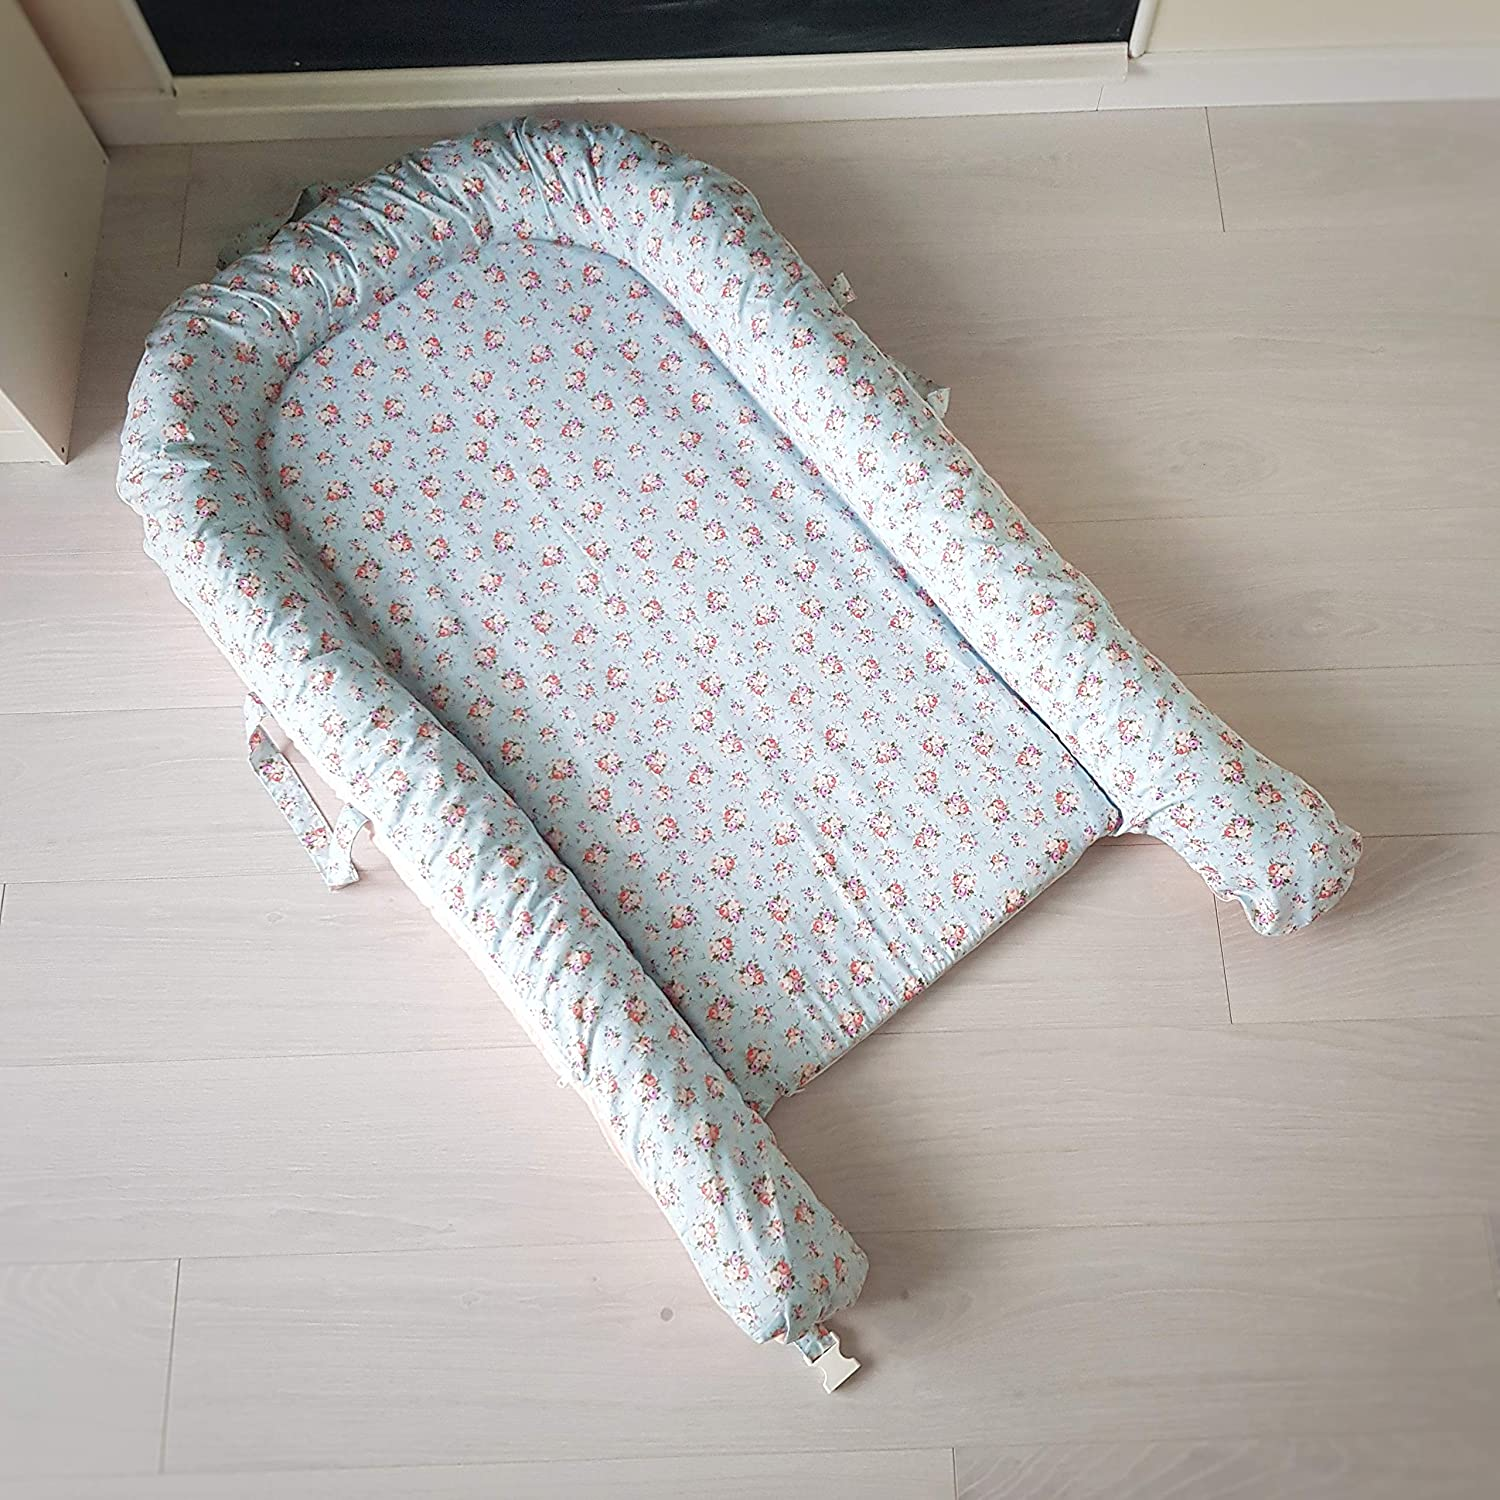 Toddler nest with removable cover and hard mattress Cosleeper bed Co sleeper for baby Snuggle nest Baby lounger Shabby Chic print Sleeping nest